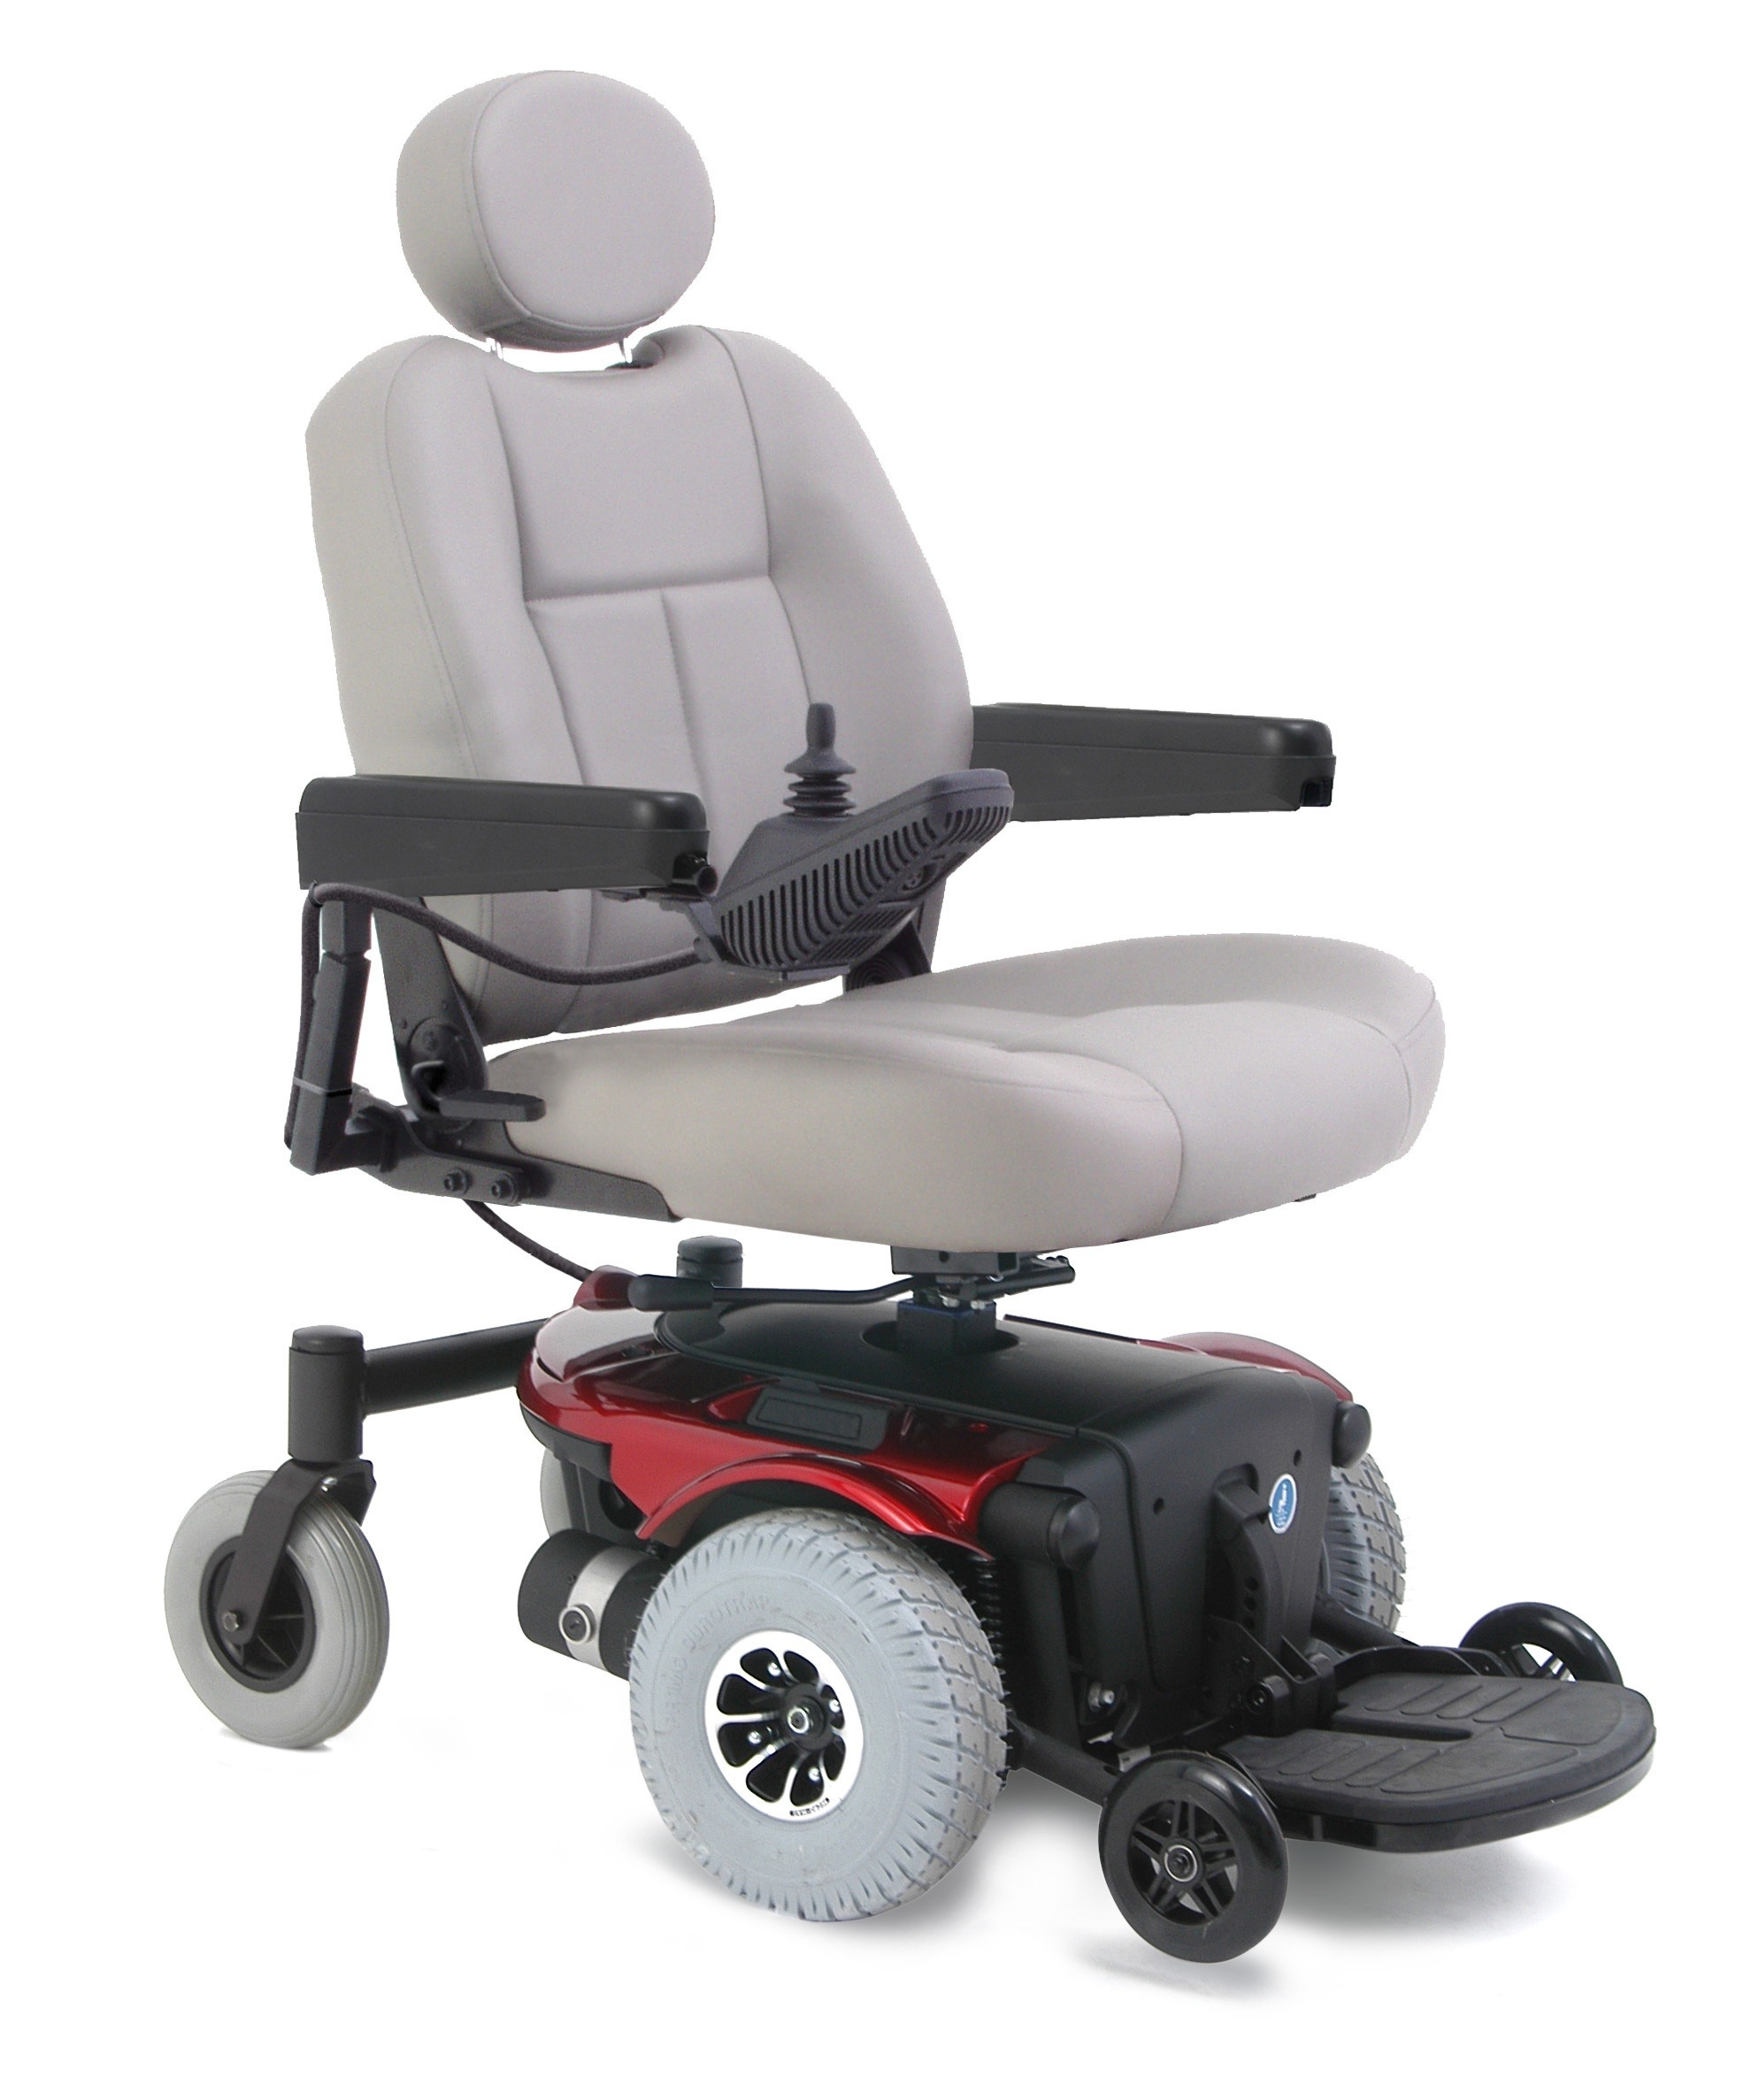 quantum wheelchair resin wicker lounge chairs rehab power replacement batteries pride mobility 1103 ultra battery 2